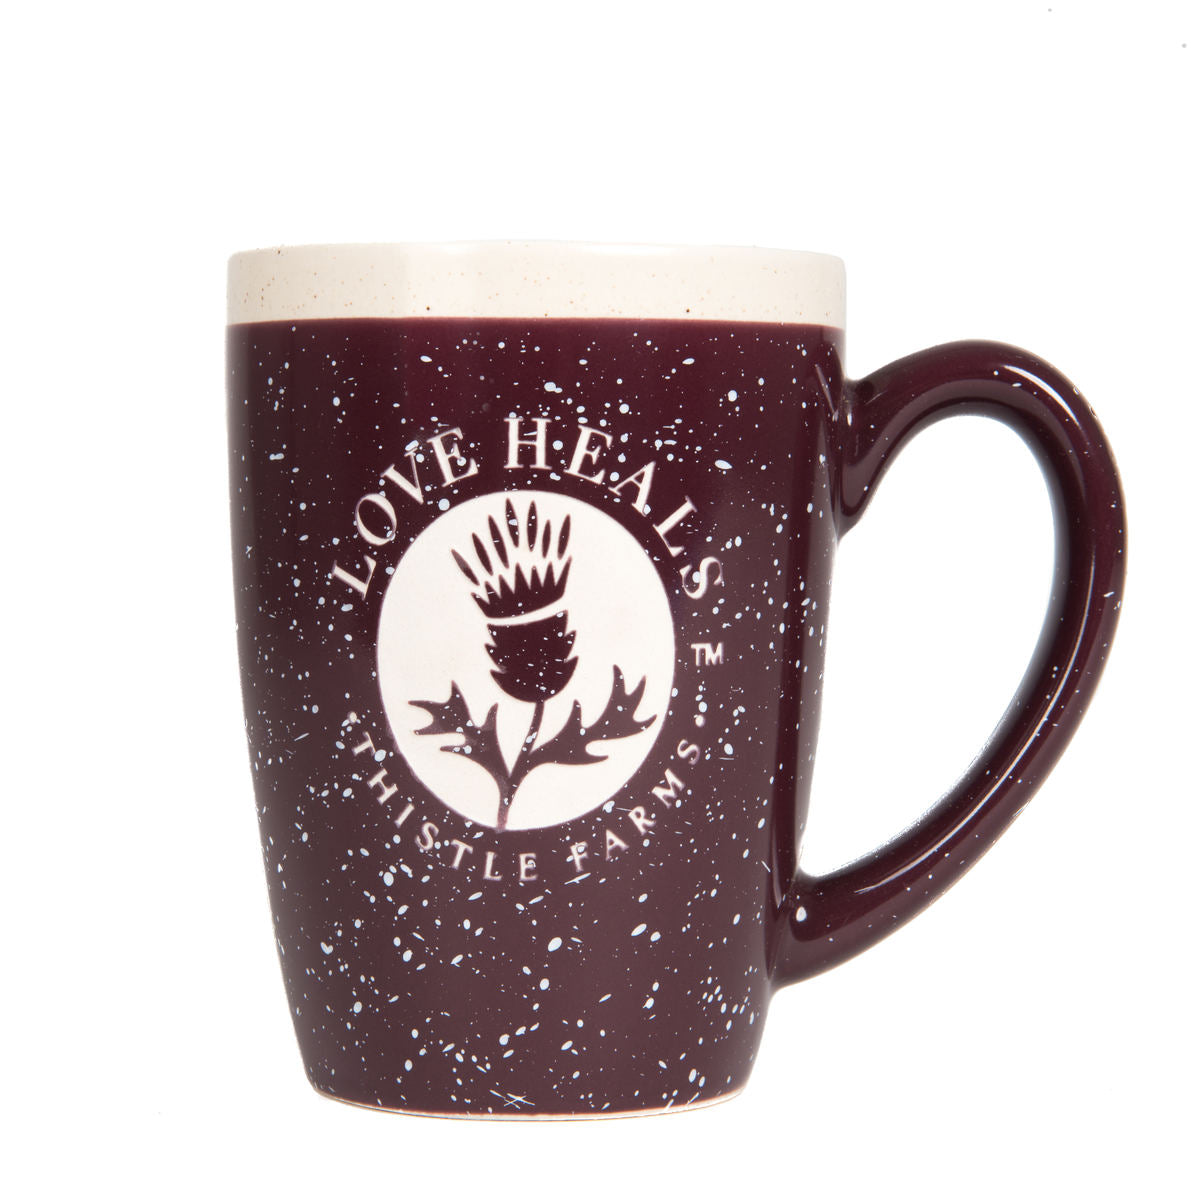 Thistle Farms Love Heals Thistle Mug, front view